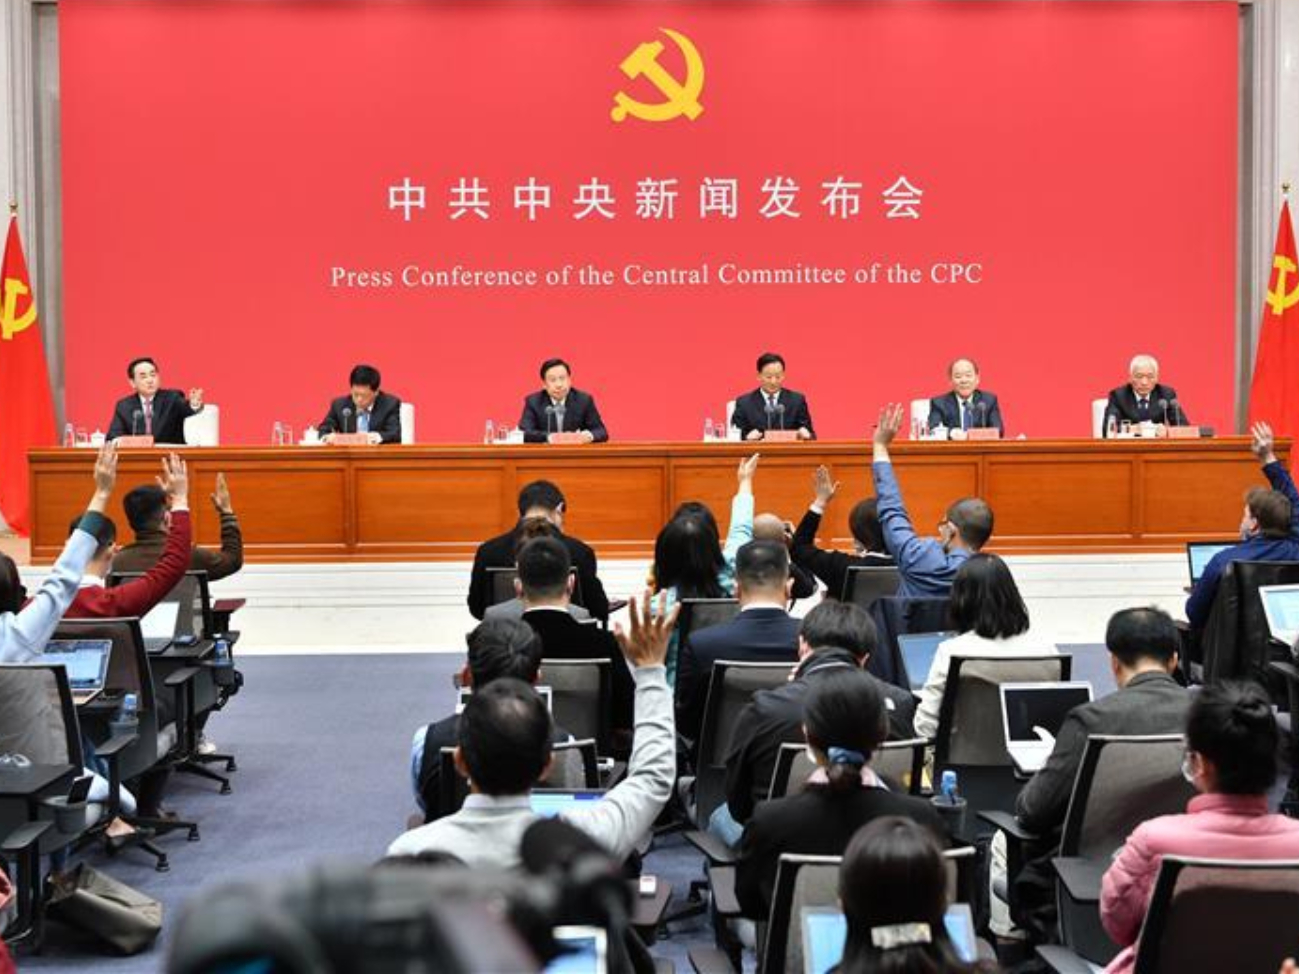 Drafting of China's development proposals upholds five principles: official